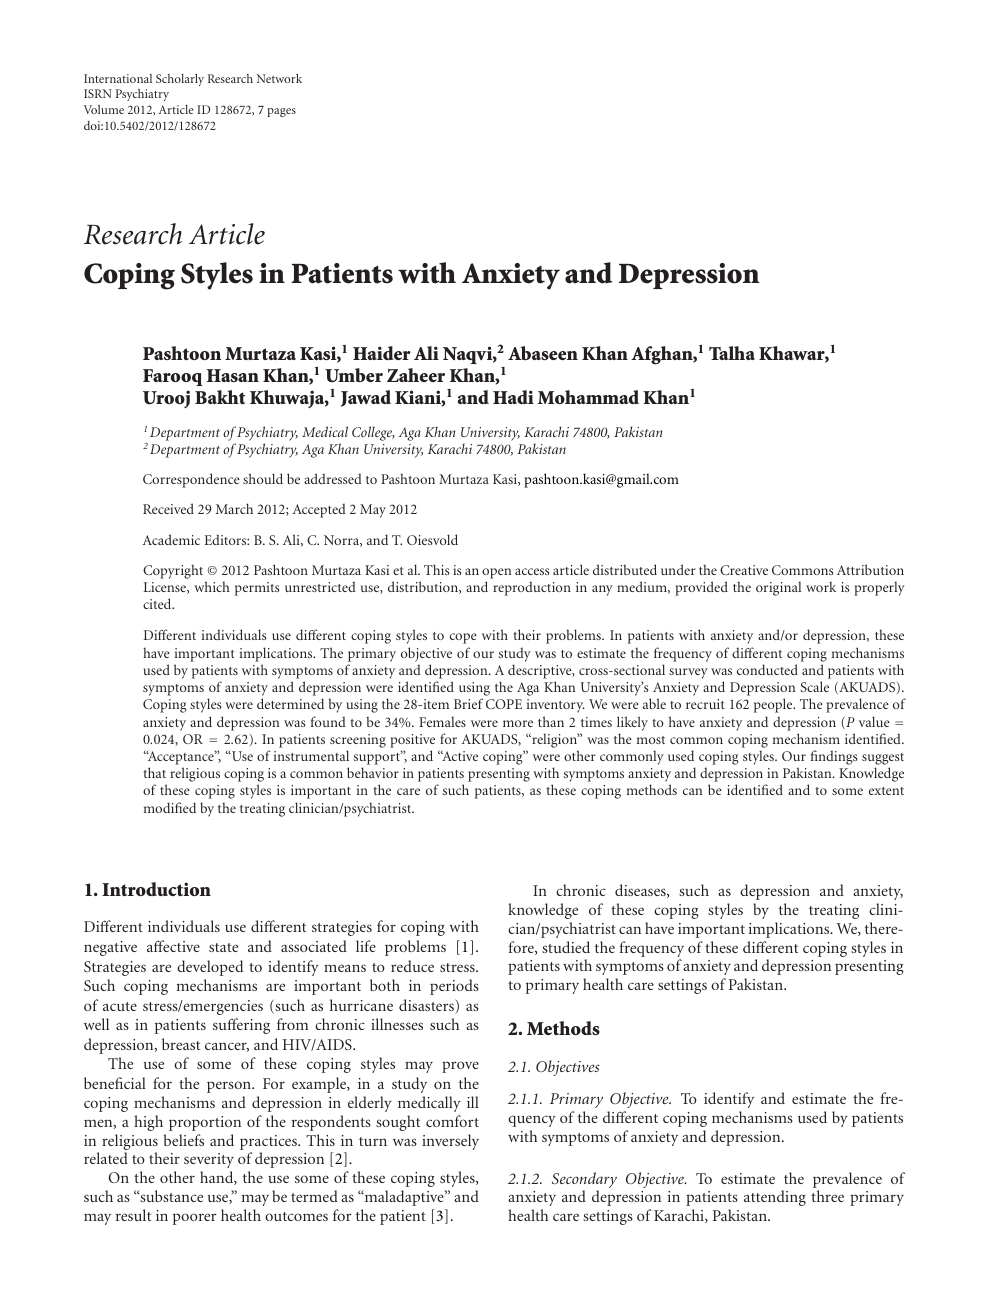 Coping Styles in Patients with Anxiety and Depression